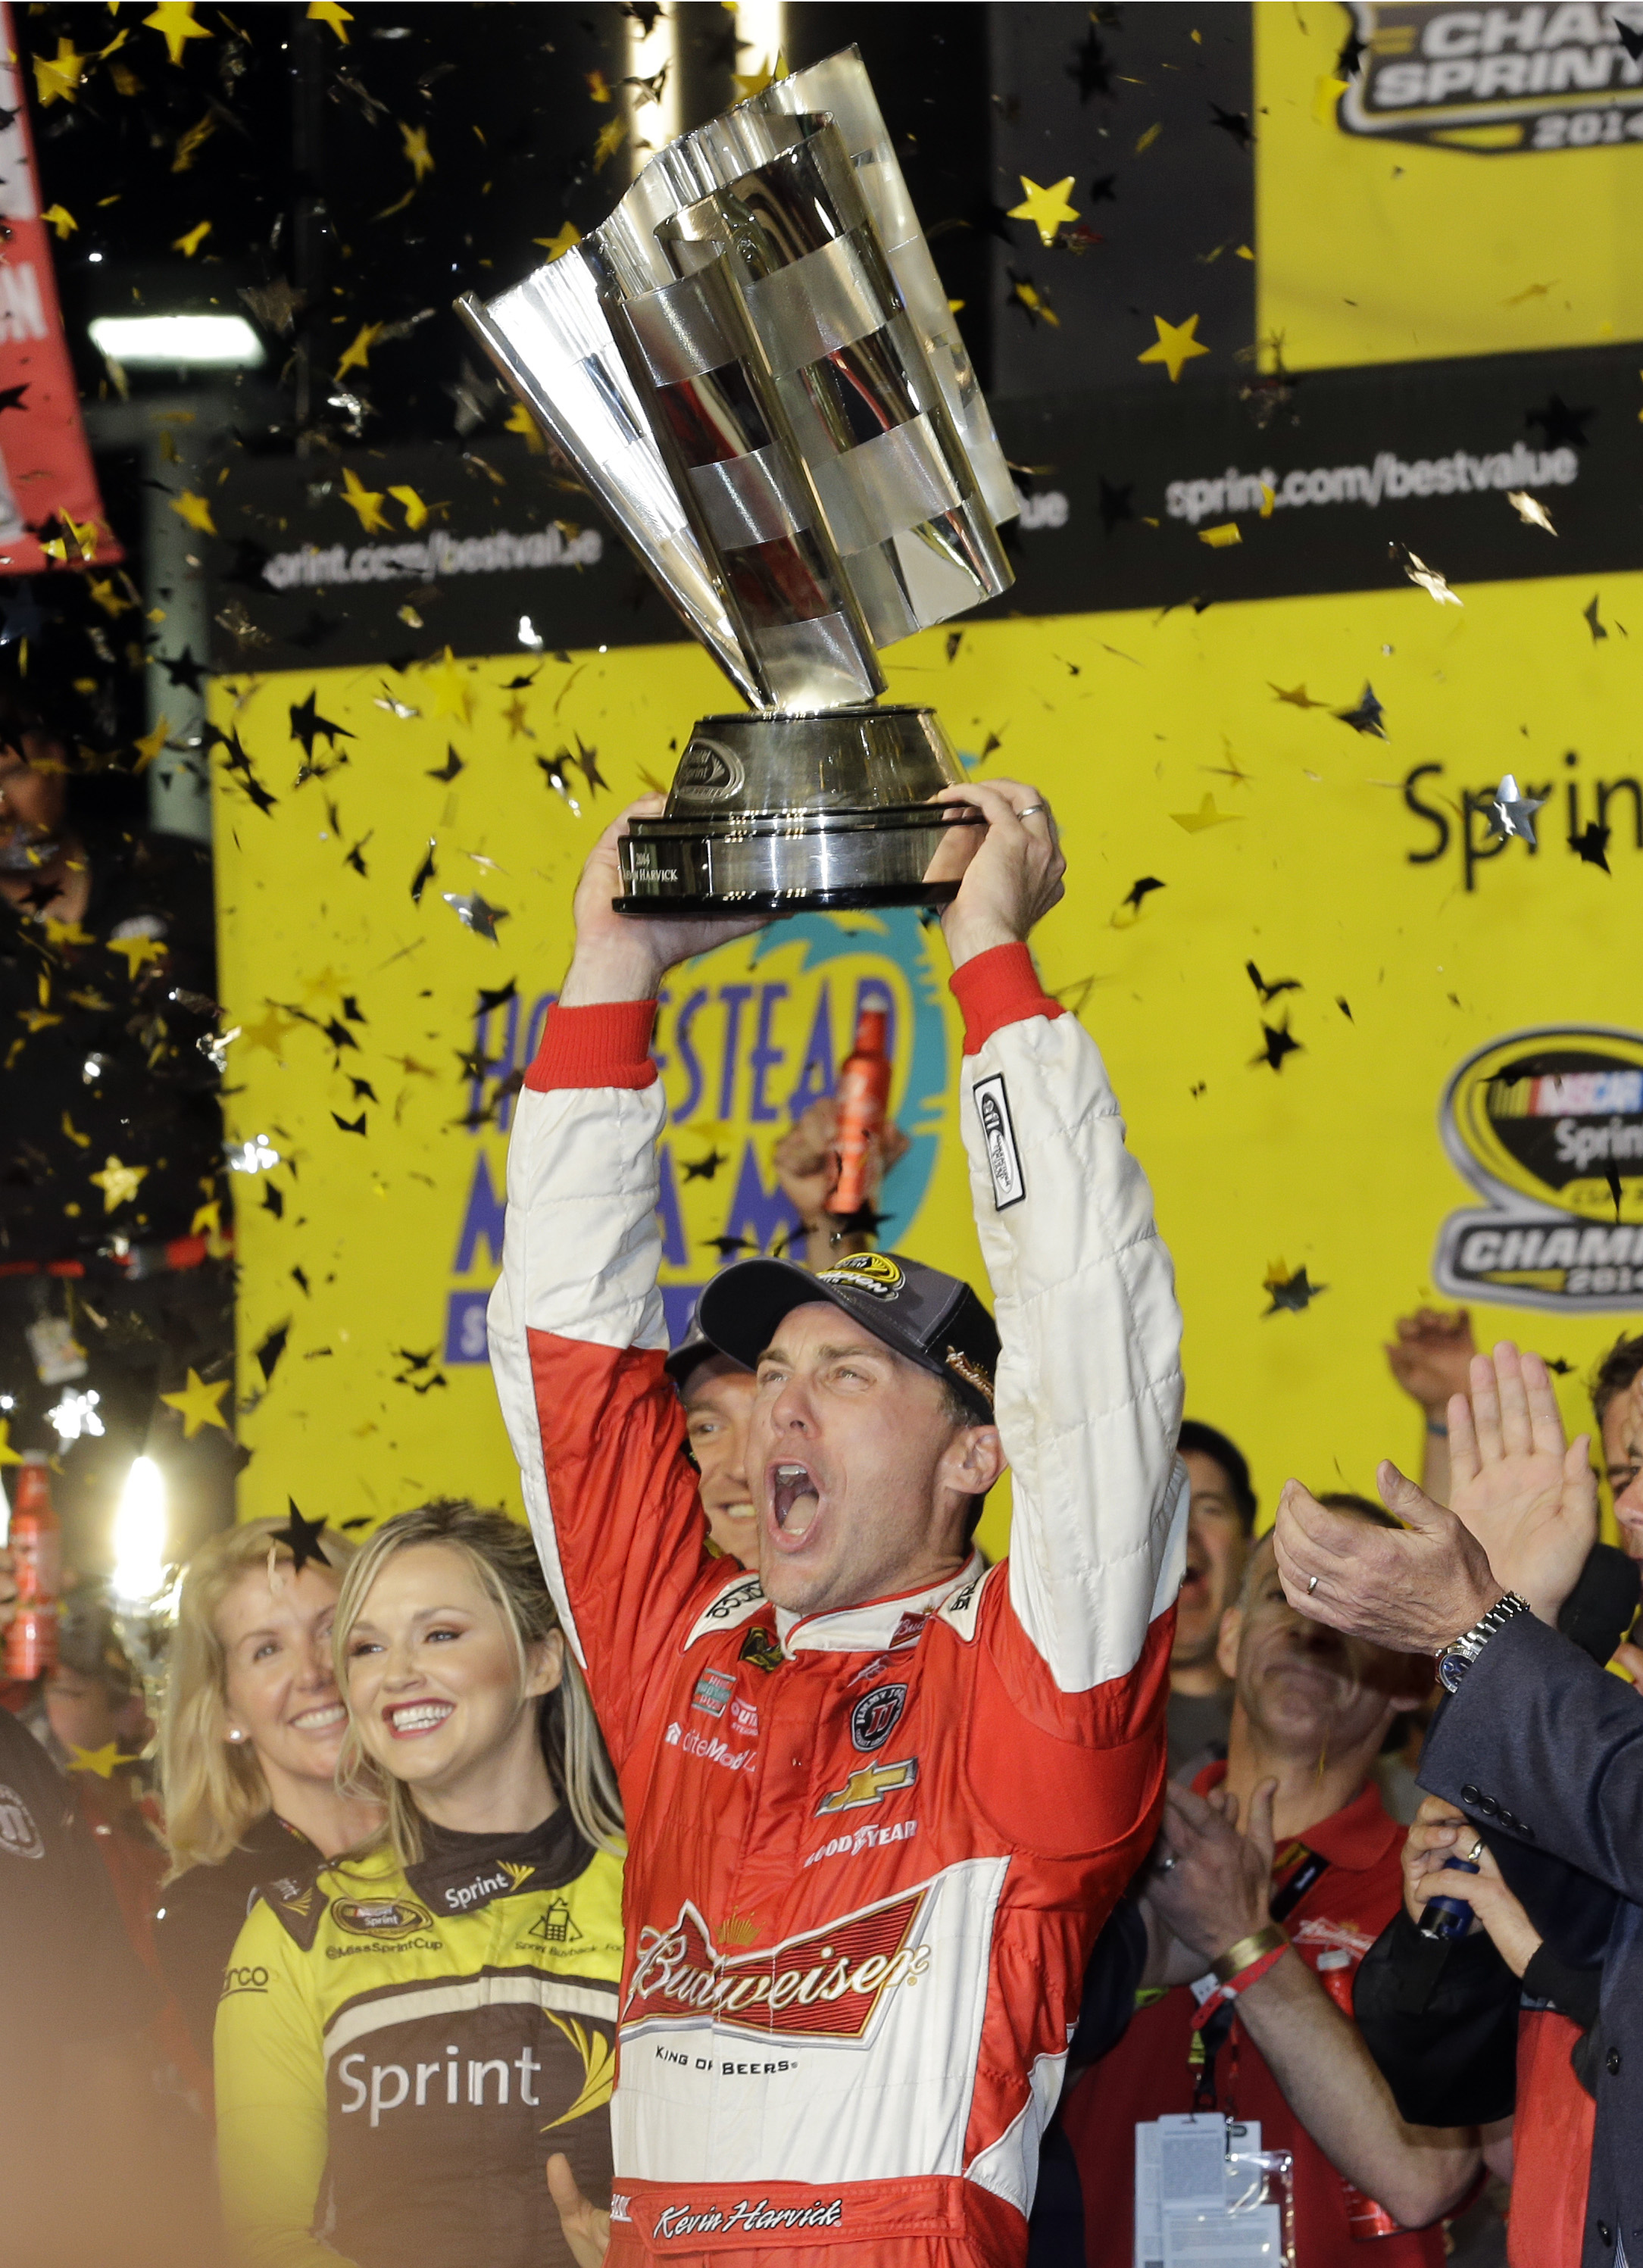 Kevin Harvick raises his trophy as he celebrates after winning the 2014 Sprint Cup championship. (AP)